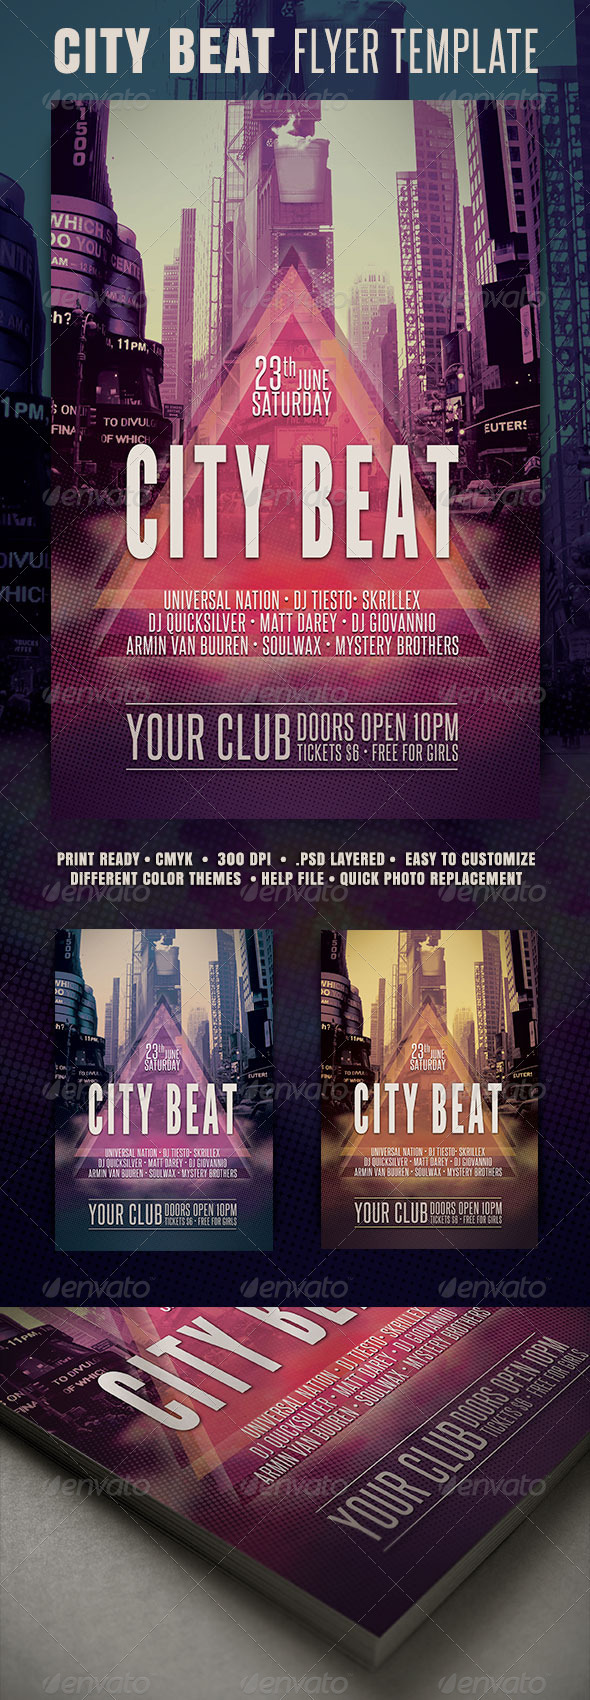 City Beat Flyer - Clubs & Parties Events